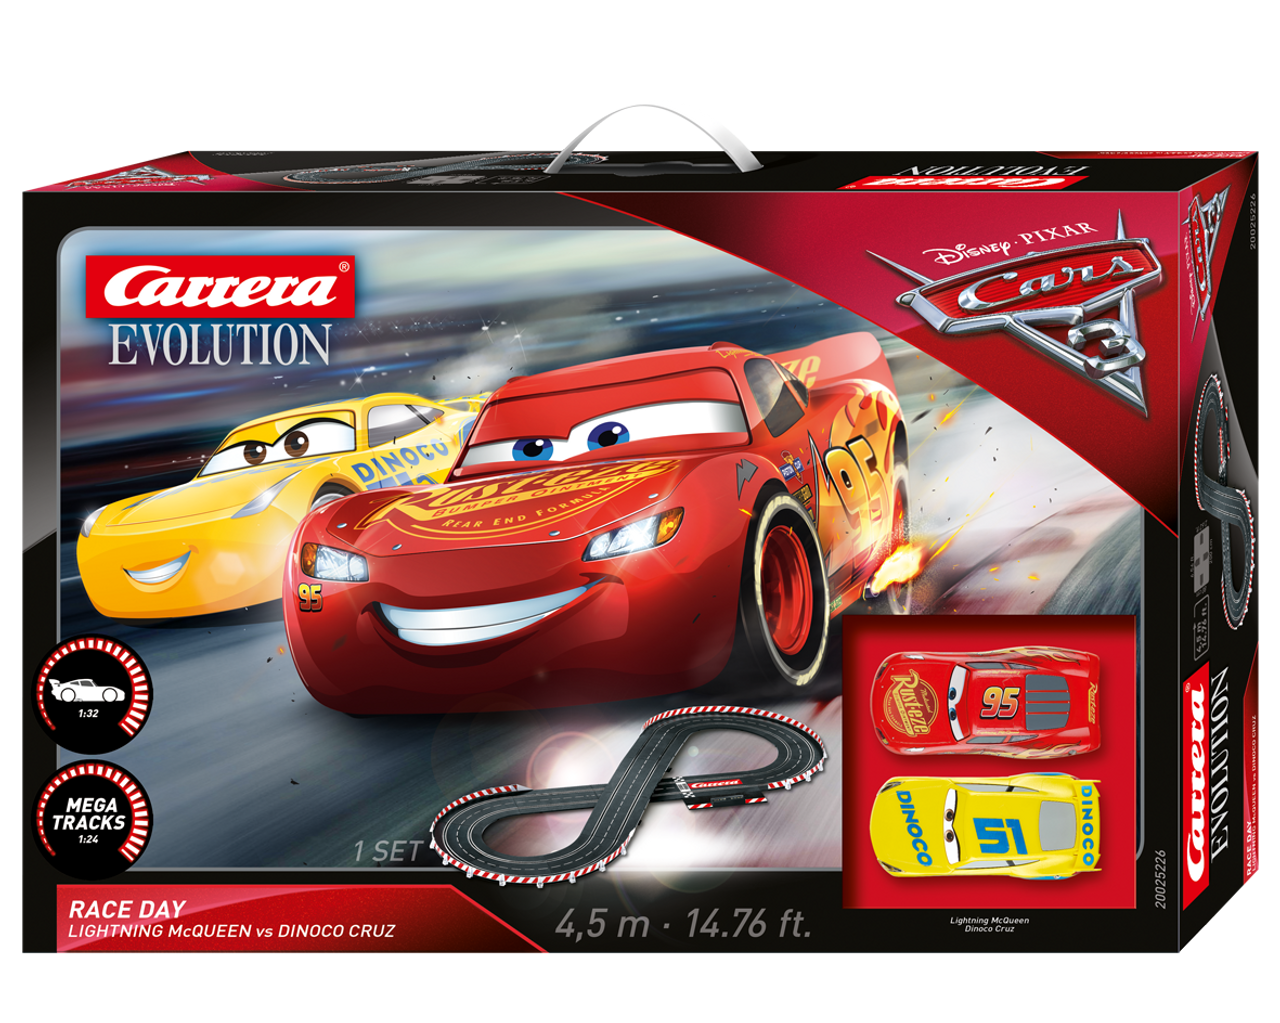 Carrera Go Disney Pixar Cars 3 Pole Position Slot Car Race Track Set Lightning Mcqueen Jackson Storm Hobbies Slot Cars Race Tracks Accessories Race Tracks